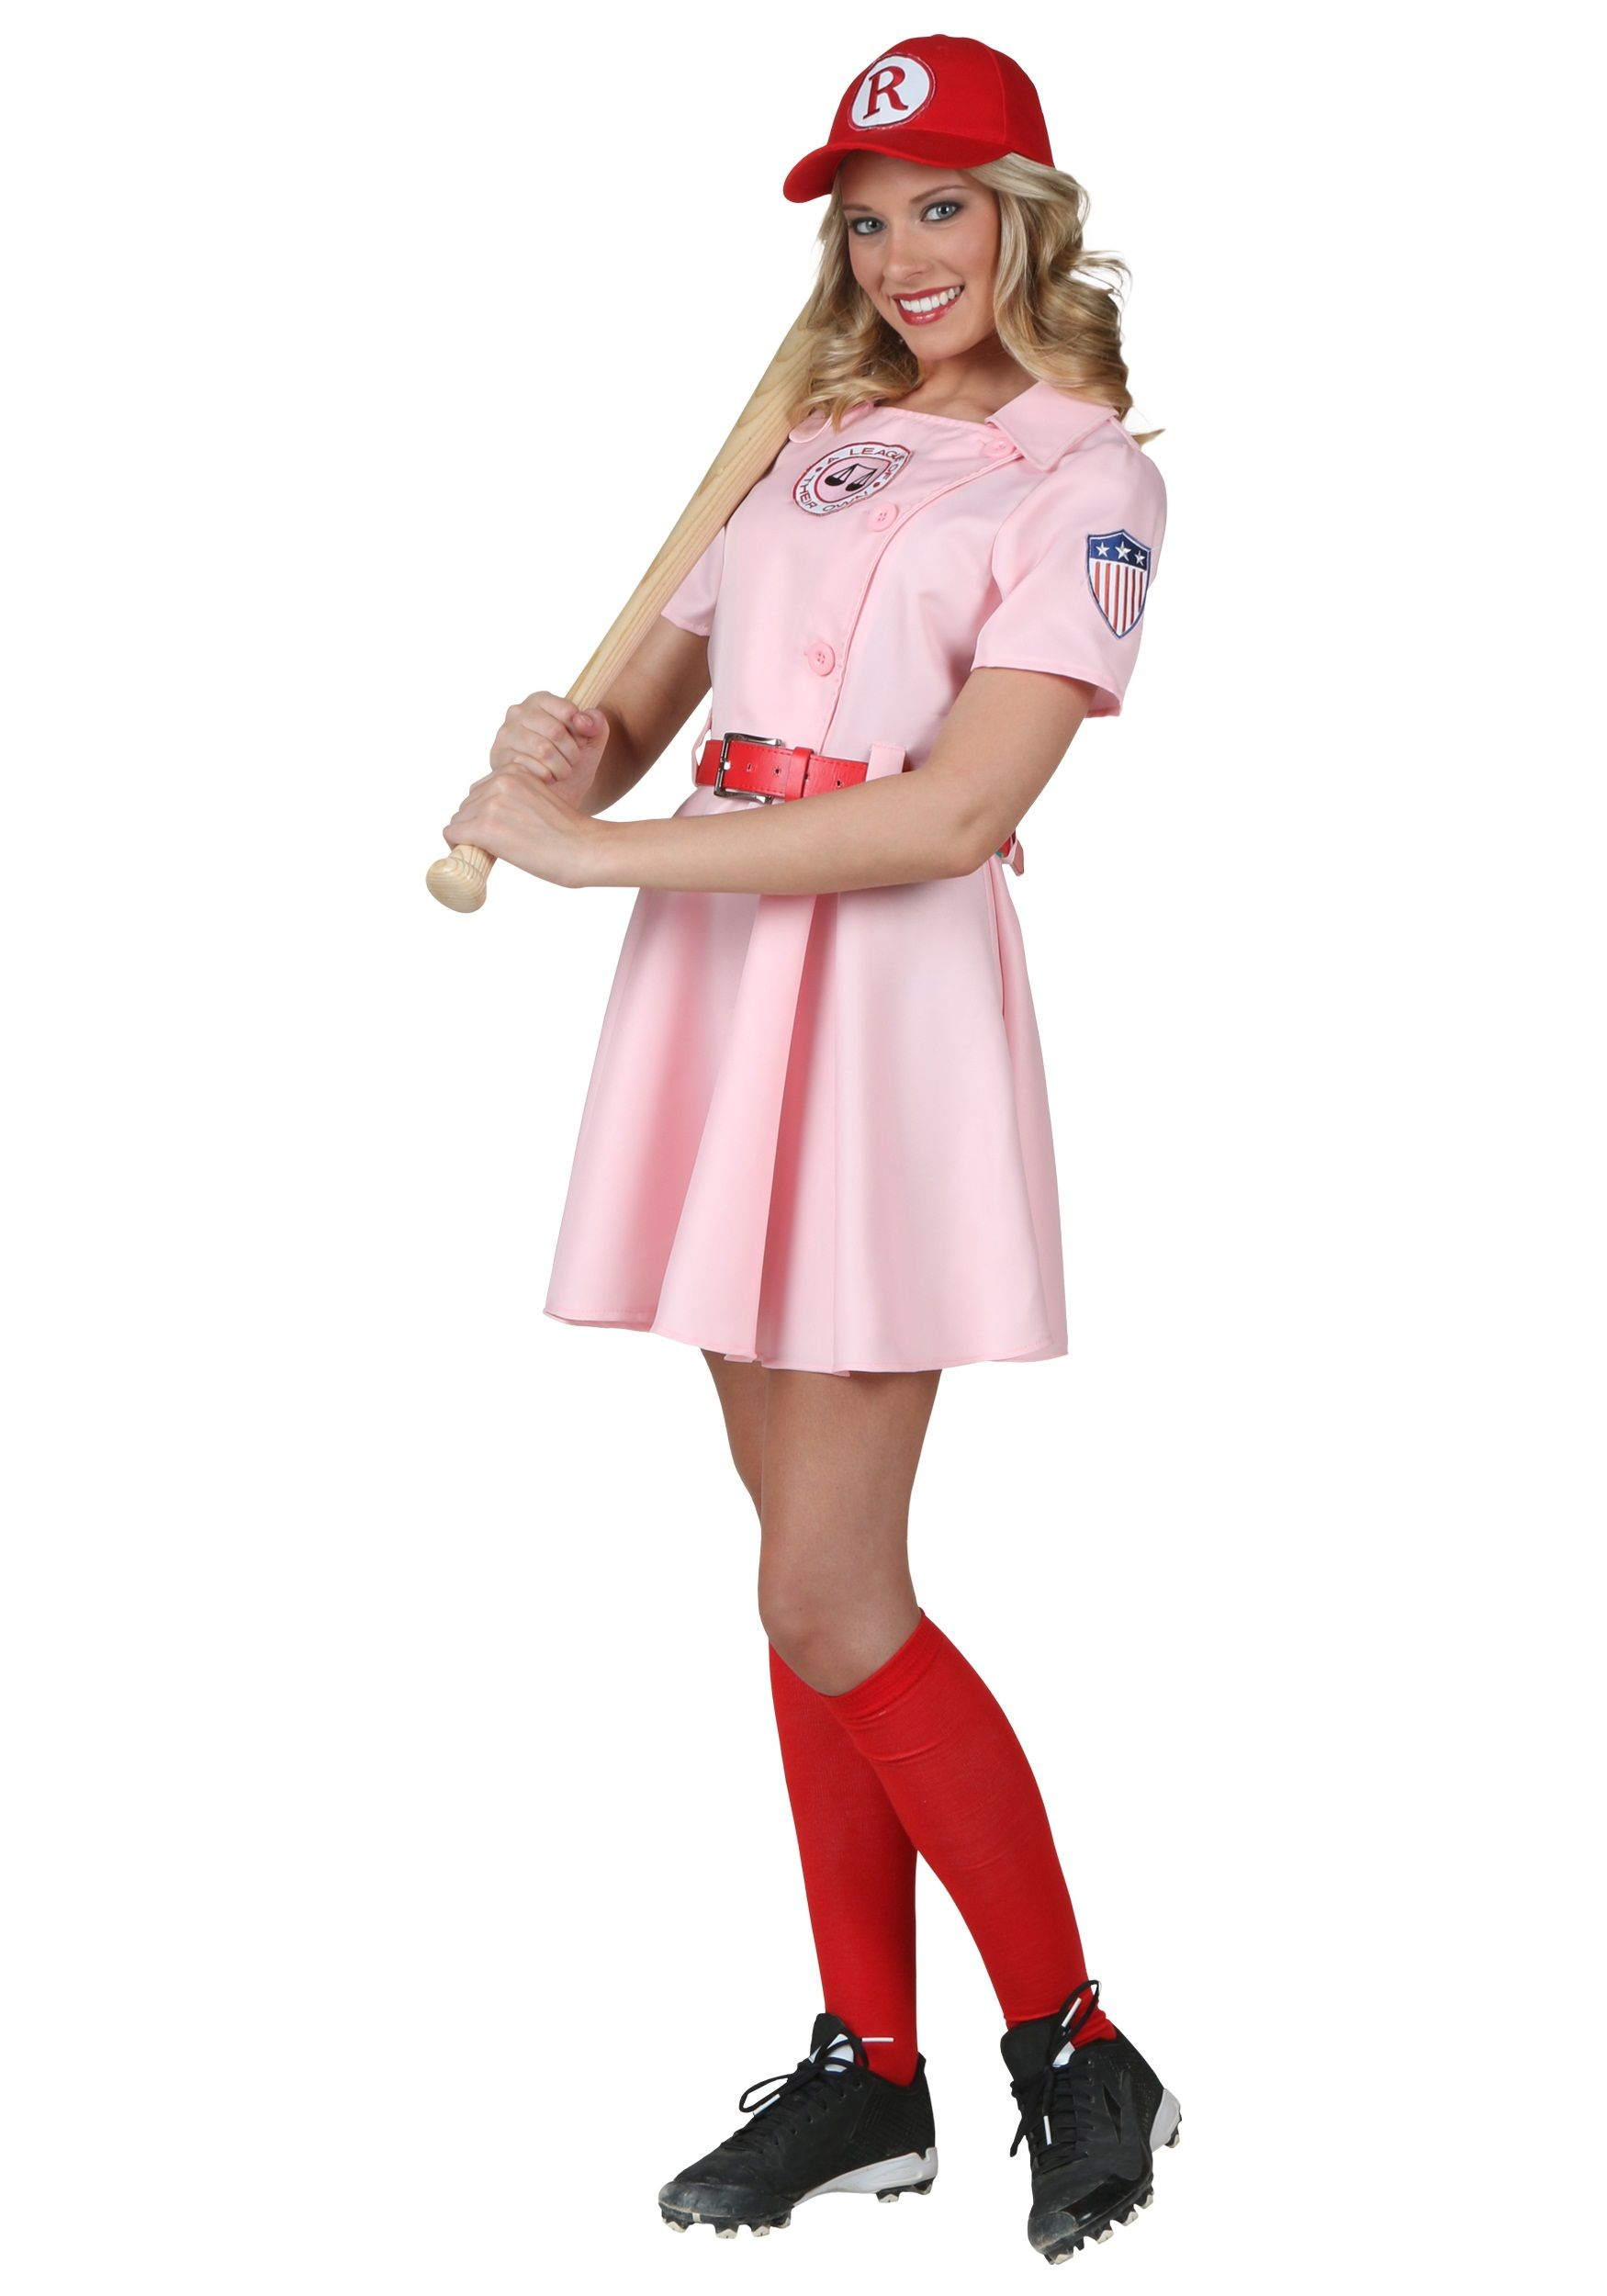 Plus Size League of Their Own Dottie Costume (arm patch